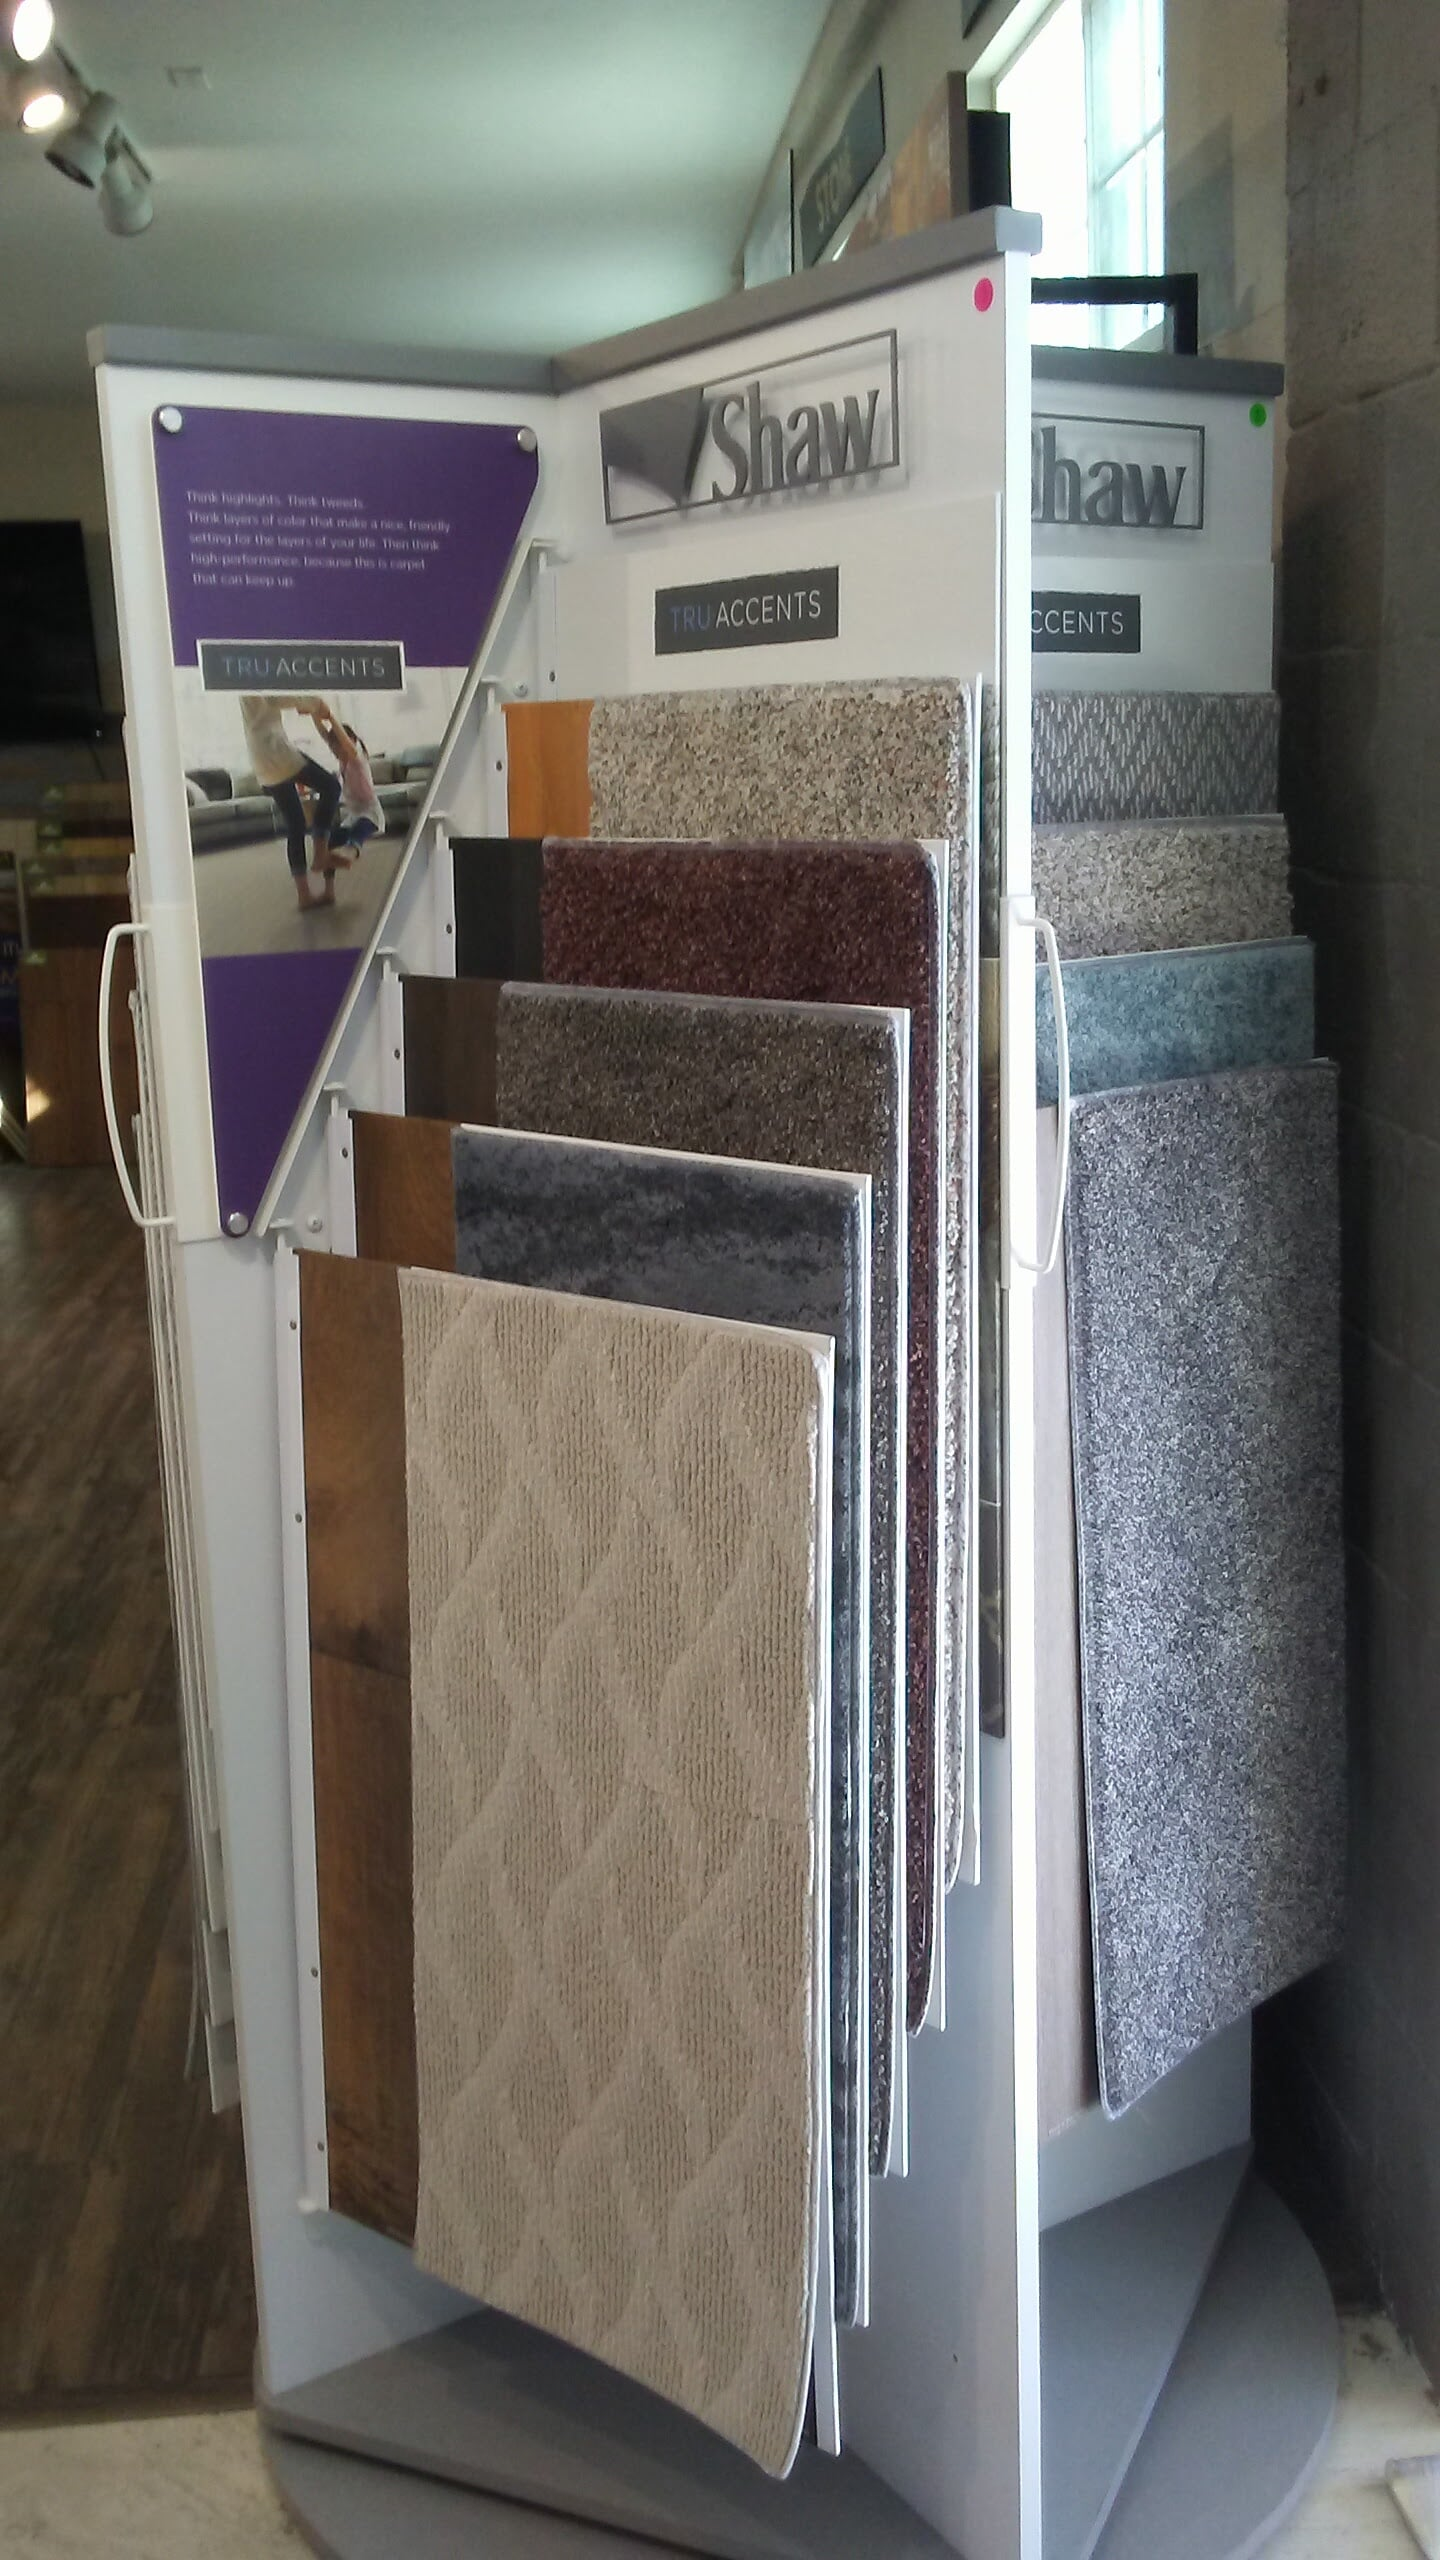 Shaw flooring available in our showroom in North County, CA